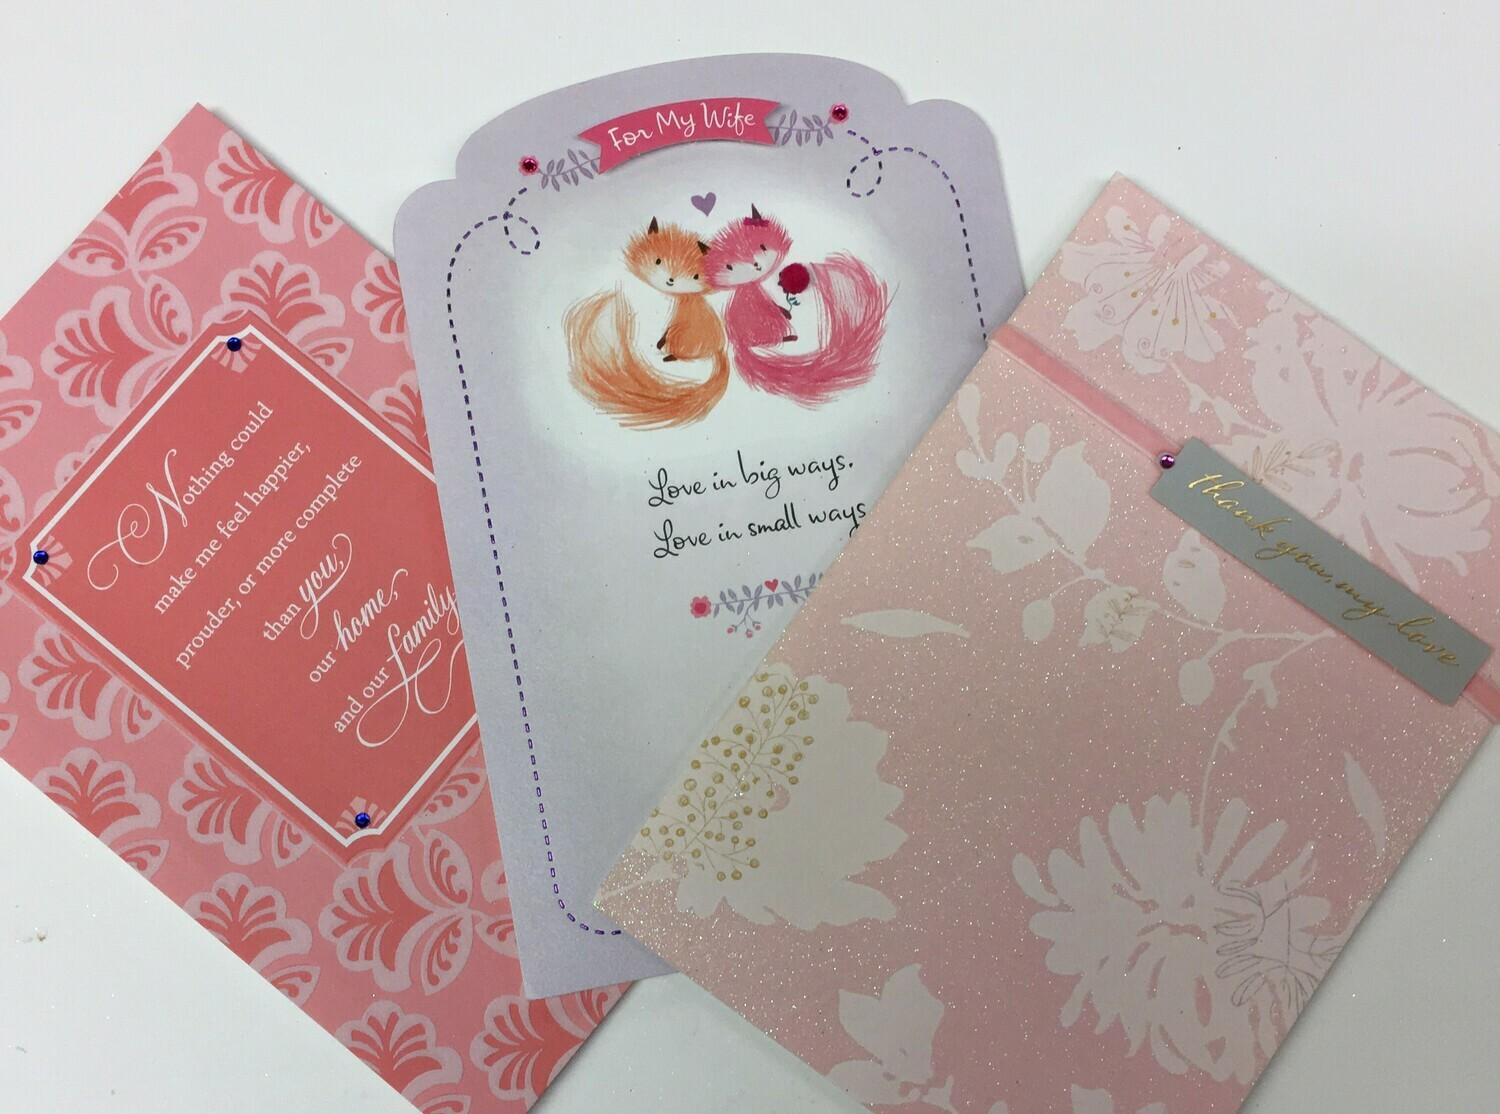 Wife Cards for Mother's Day.